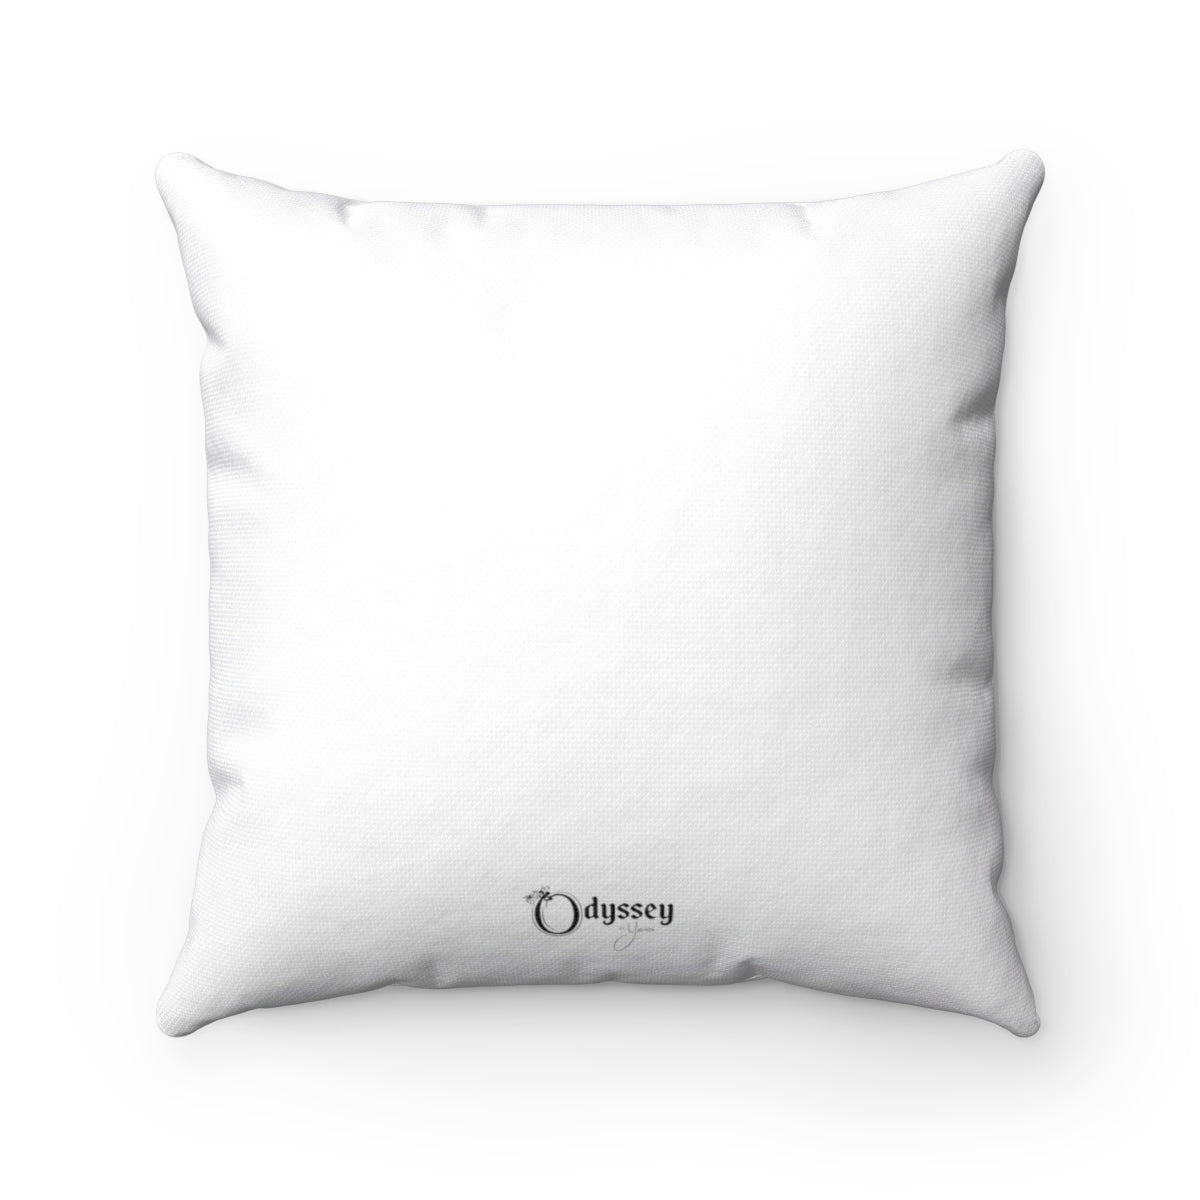 Odyssey I Love Him Square Pillow - Home Decor - Odyssey By Yendi